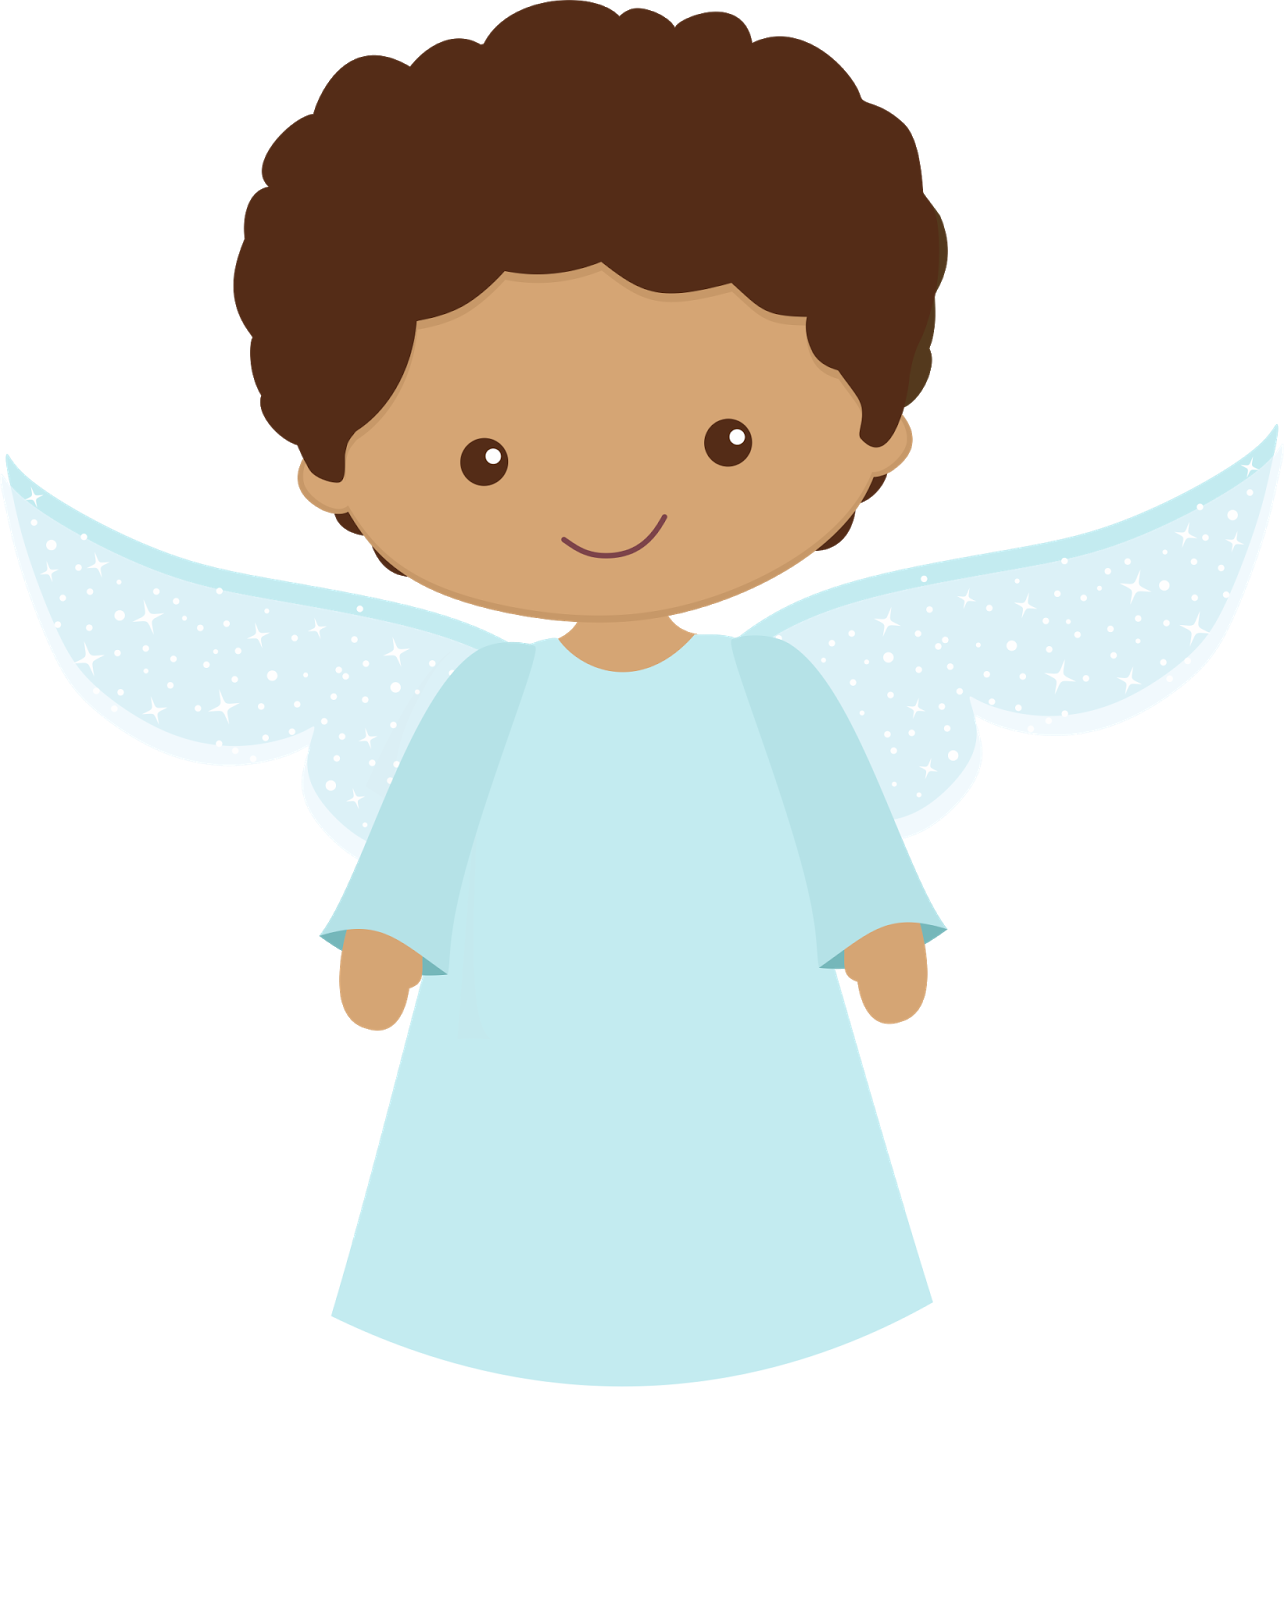 Angel christmas clipart picture freeuse Pin by Herica Tirone on Herica 1   Pinterest   Angel, Christmas ... picture freeuse